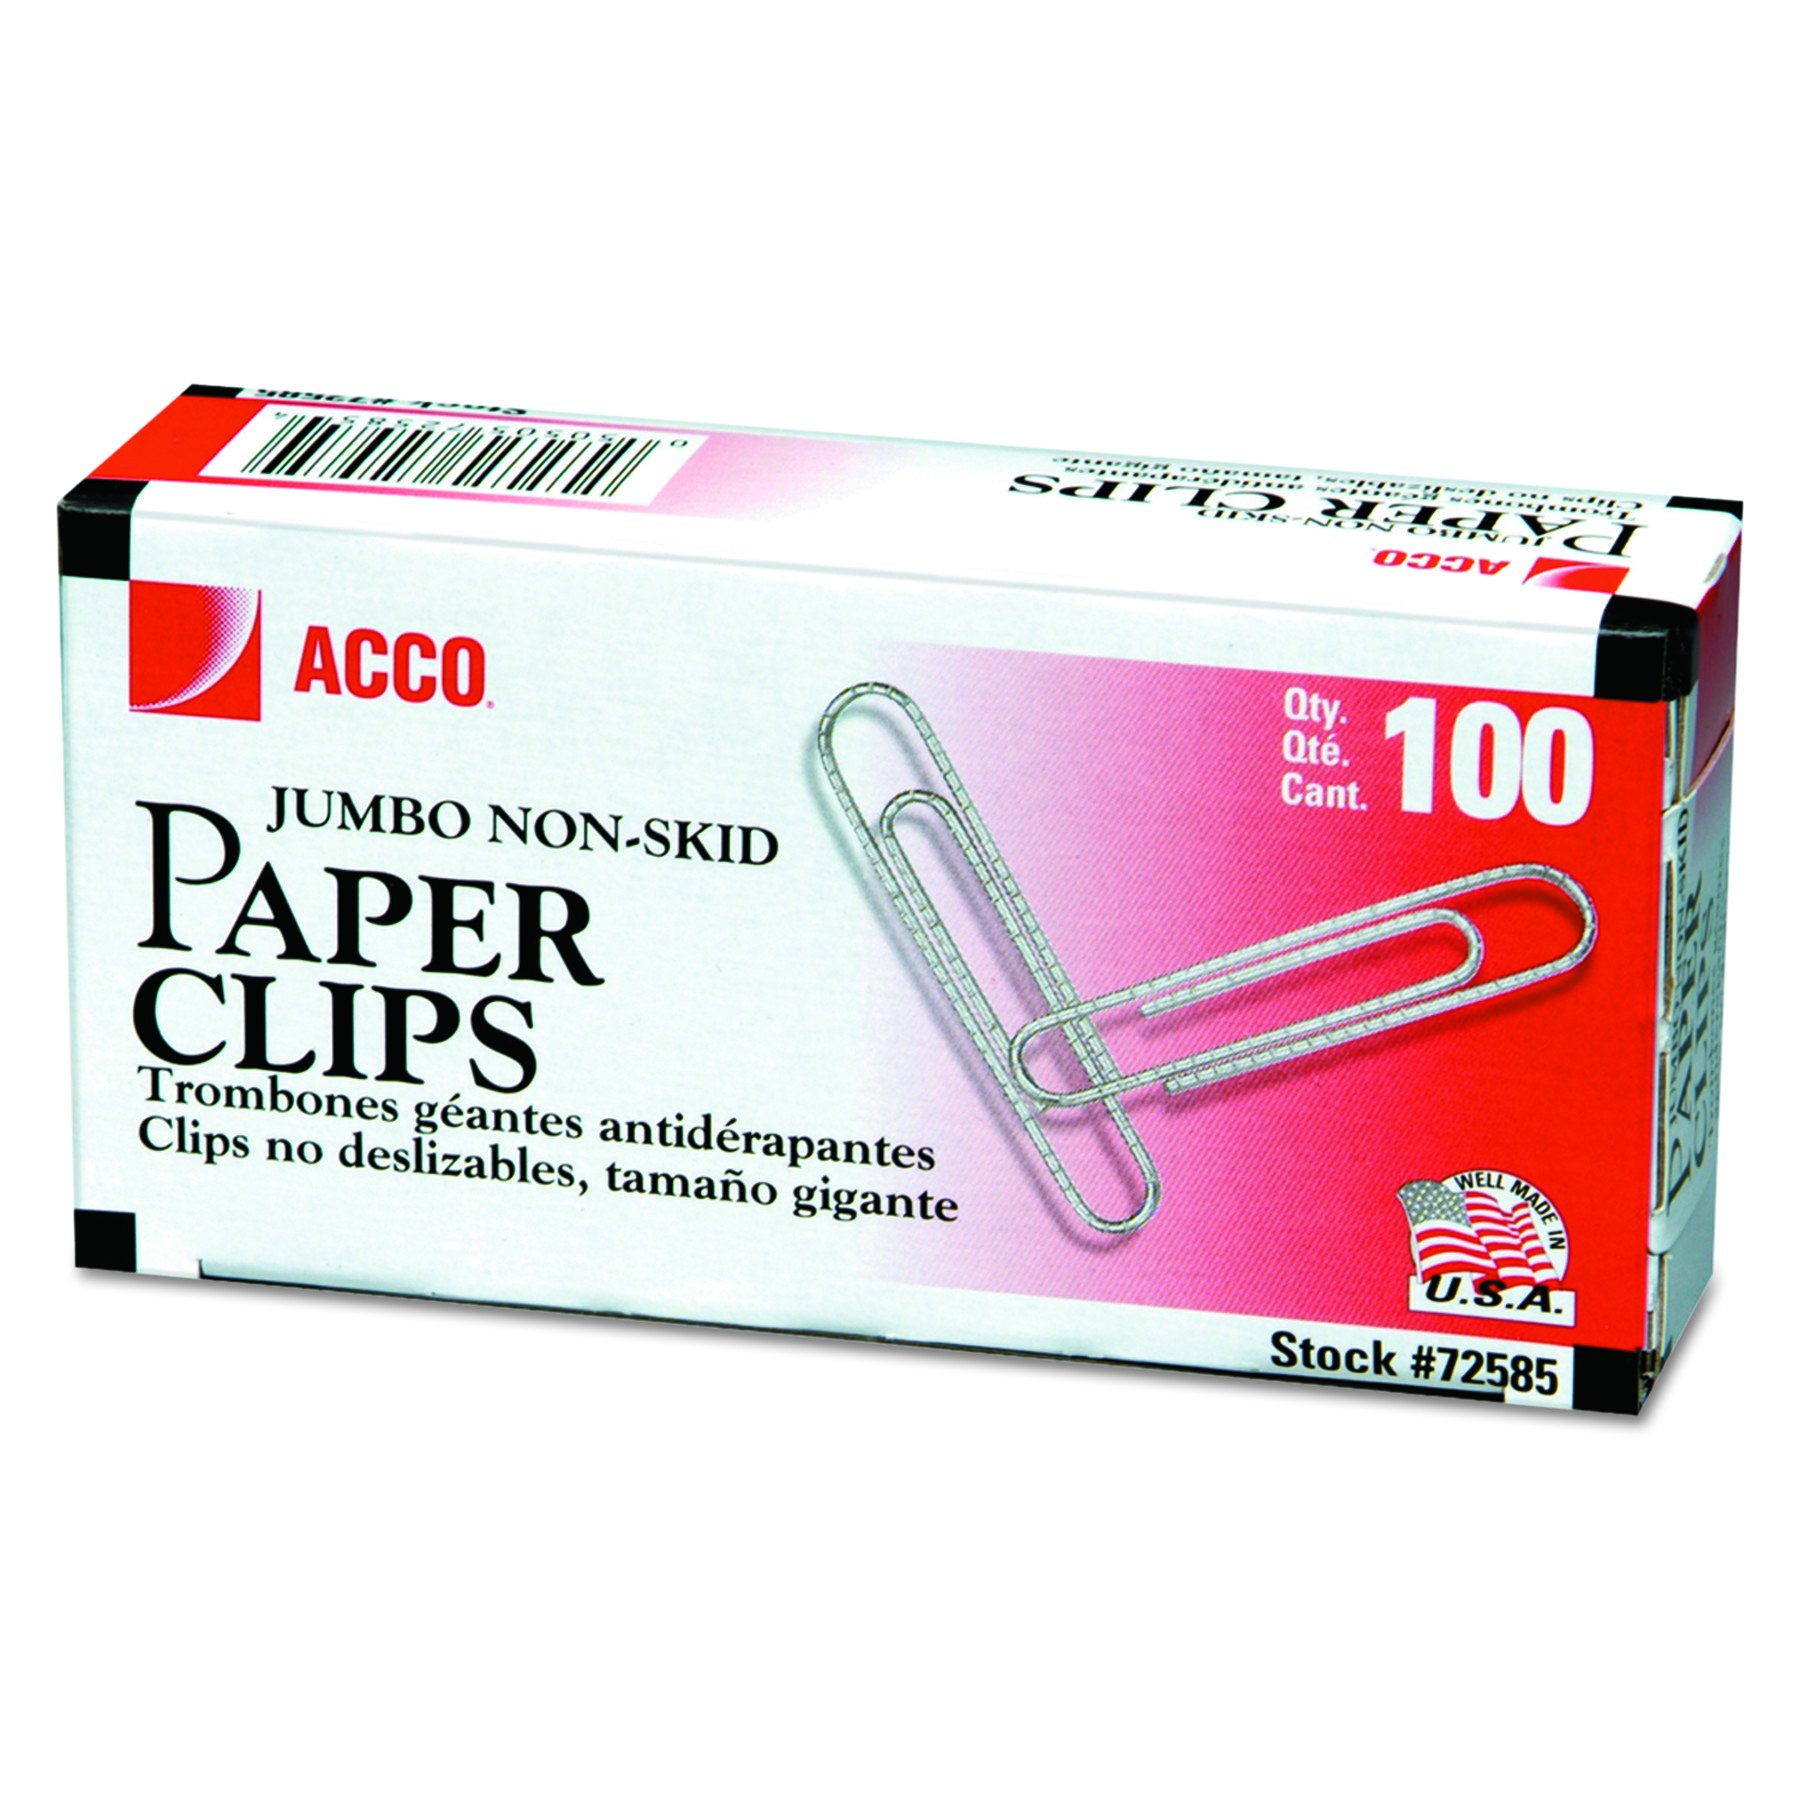 ACCO Economy Jumbo Paper Clips, Non-skid Finish, Jumbo Size 1-7/8'', 100 count (Pack Of 10)